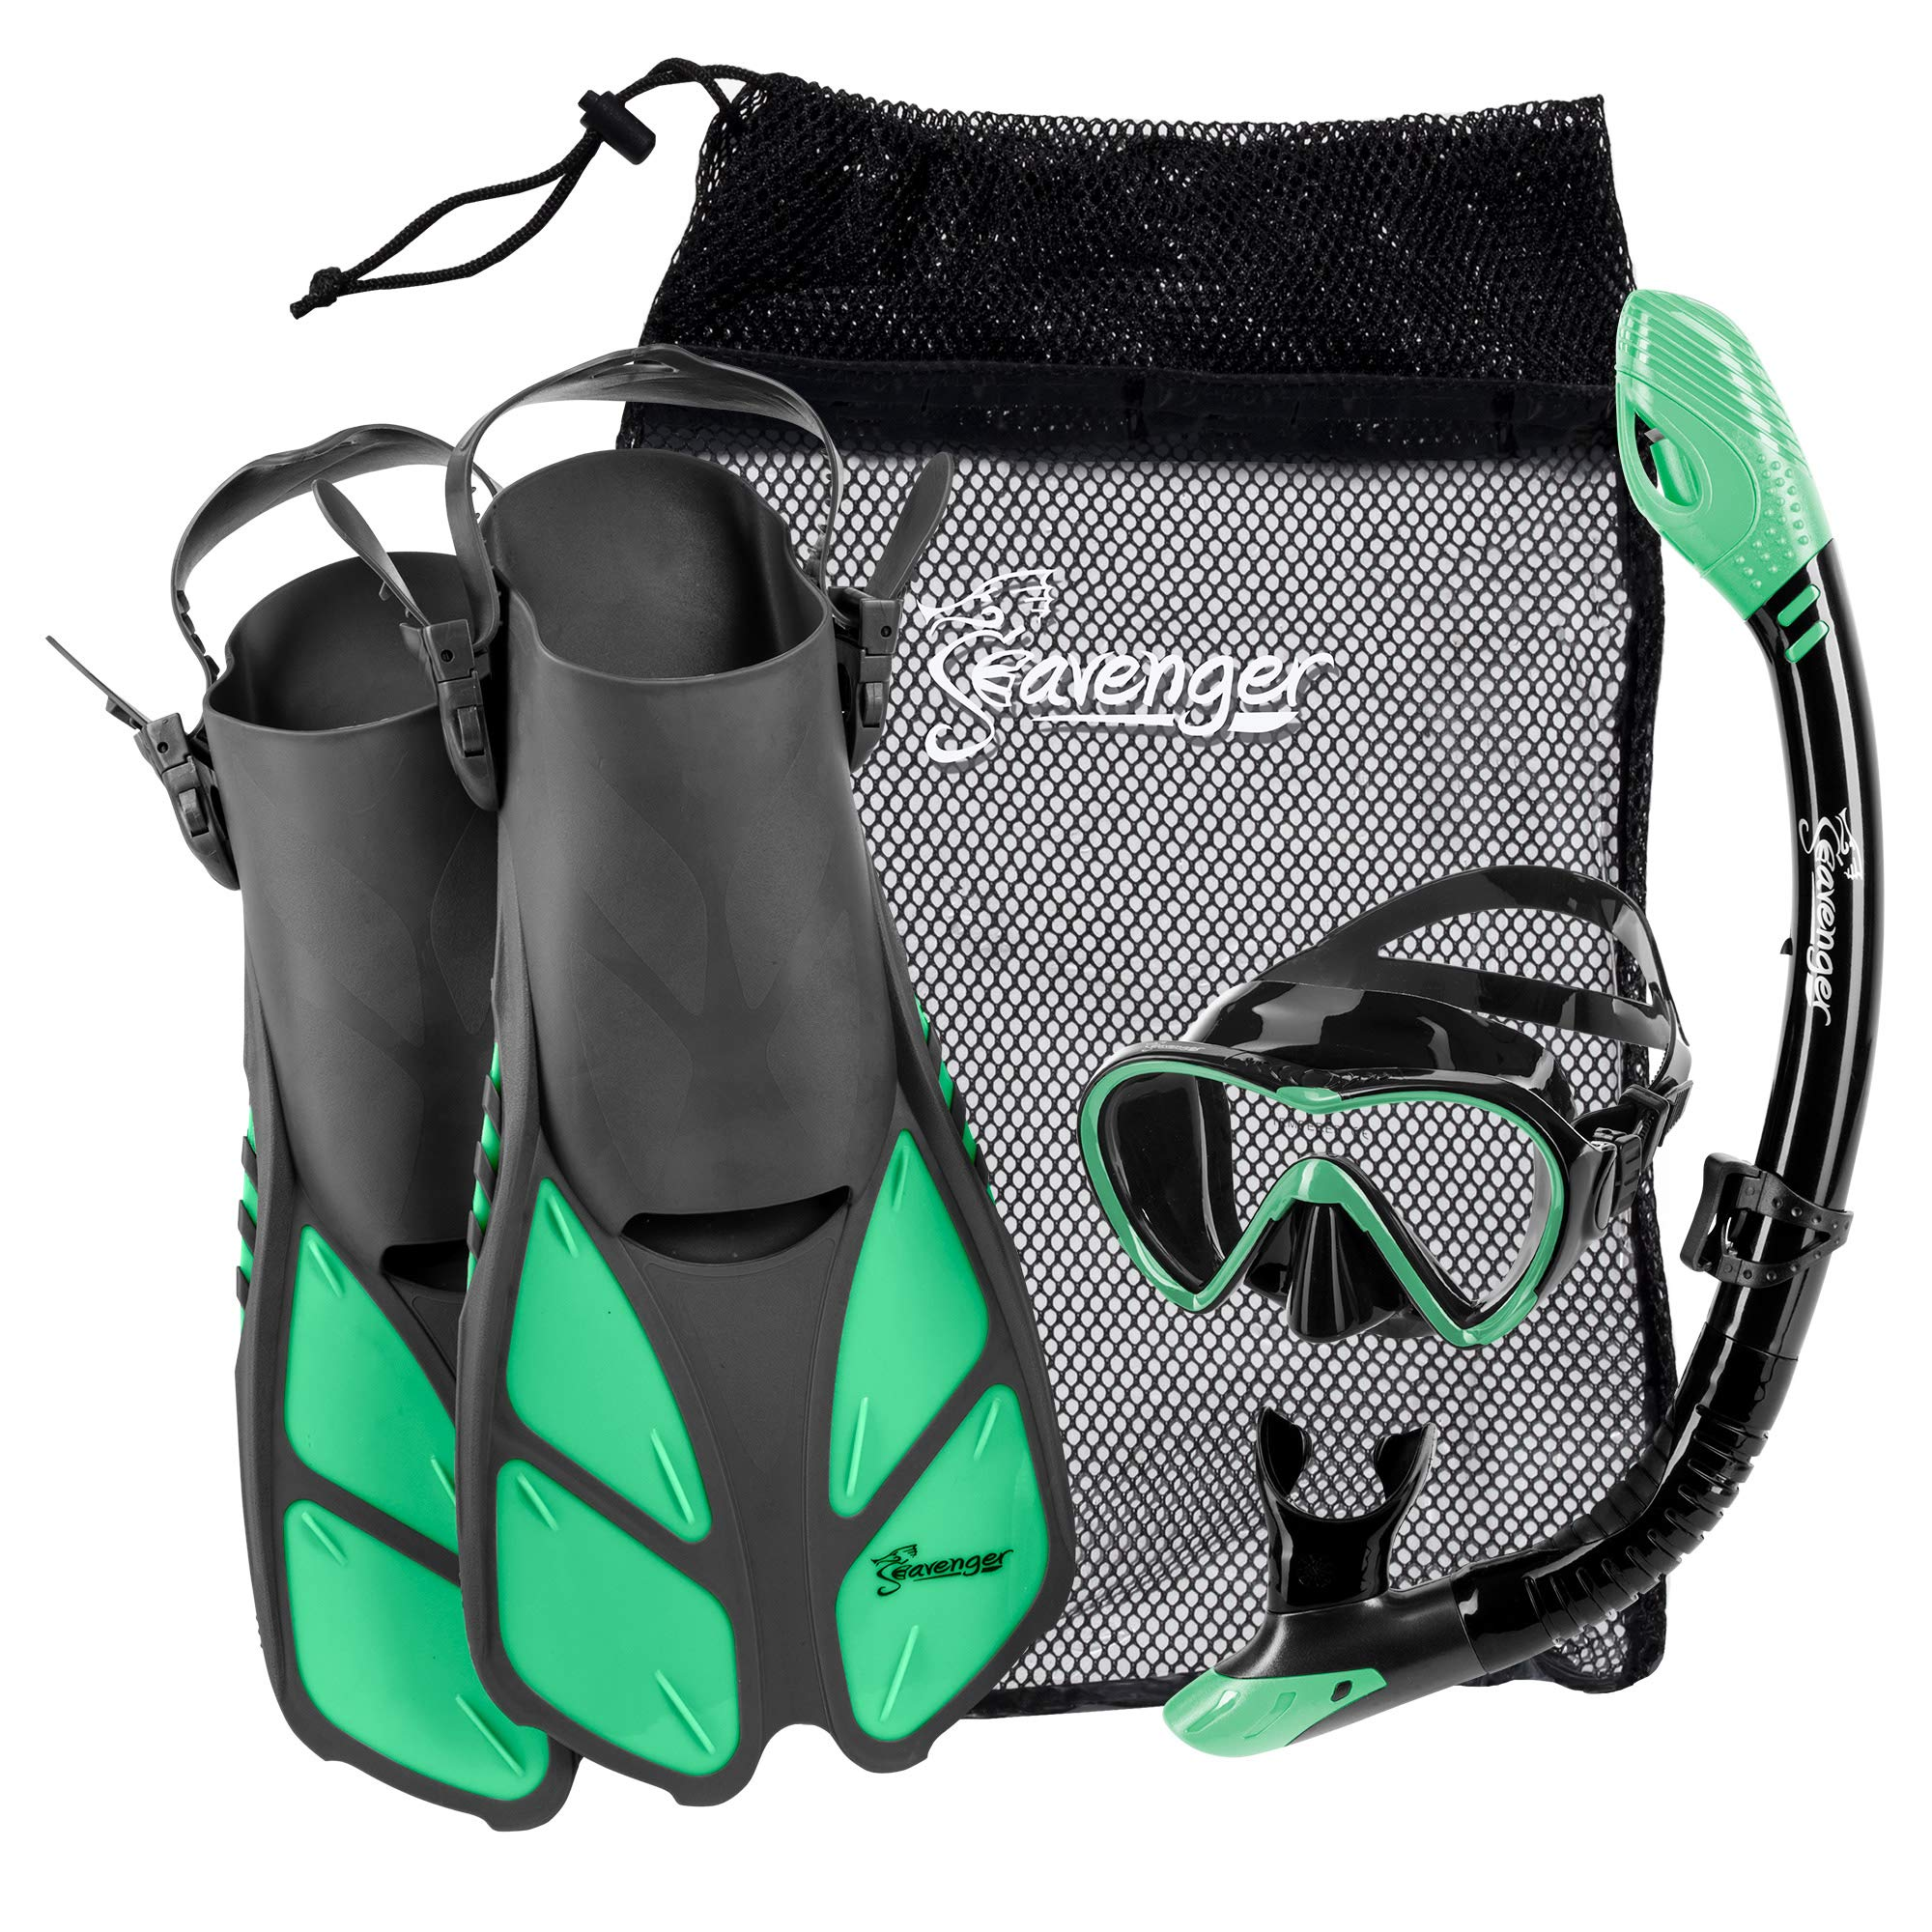 Seavenger Aviator Snorkeling Set with Gear Bag (Gray/Black Silicone/Peppermint, S/M) by Seavenger